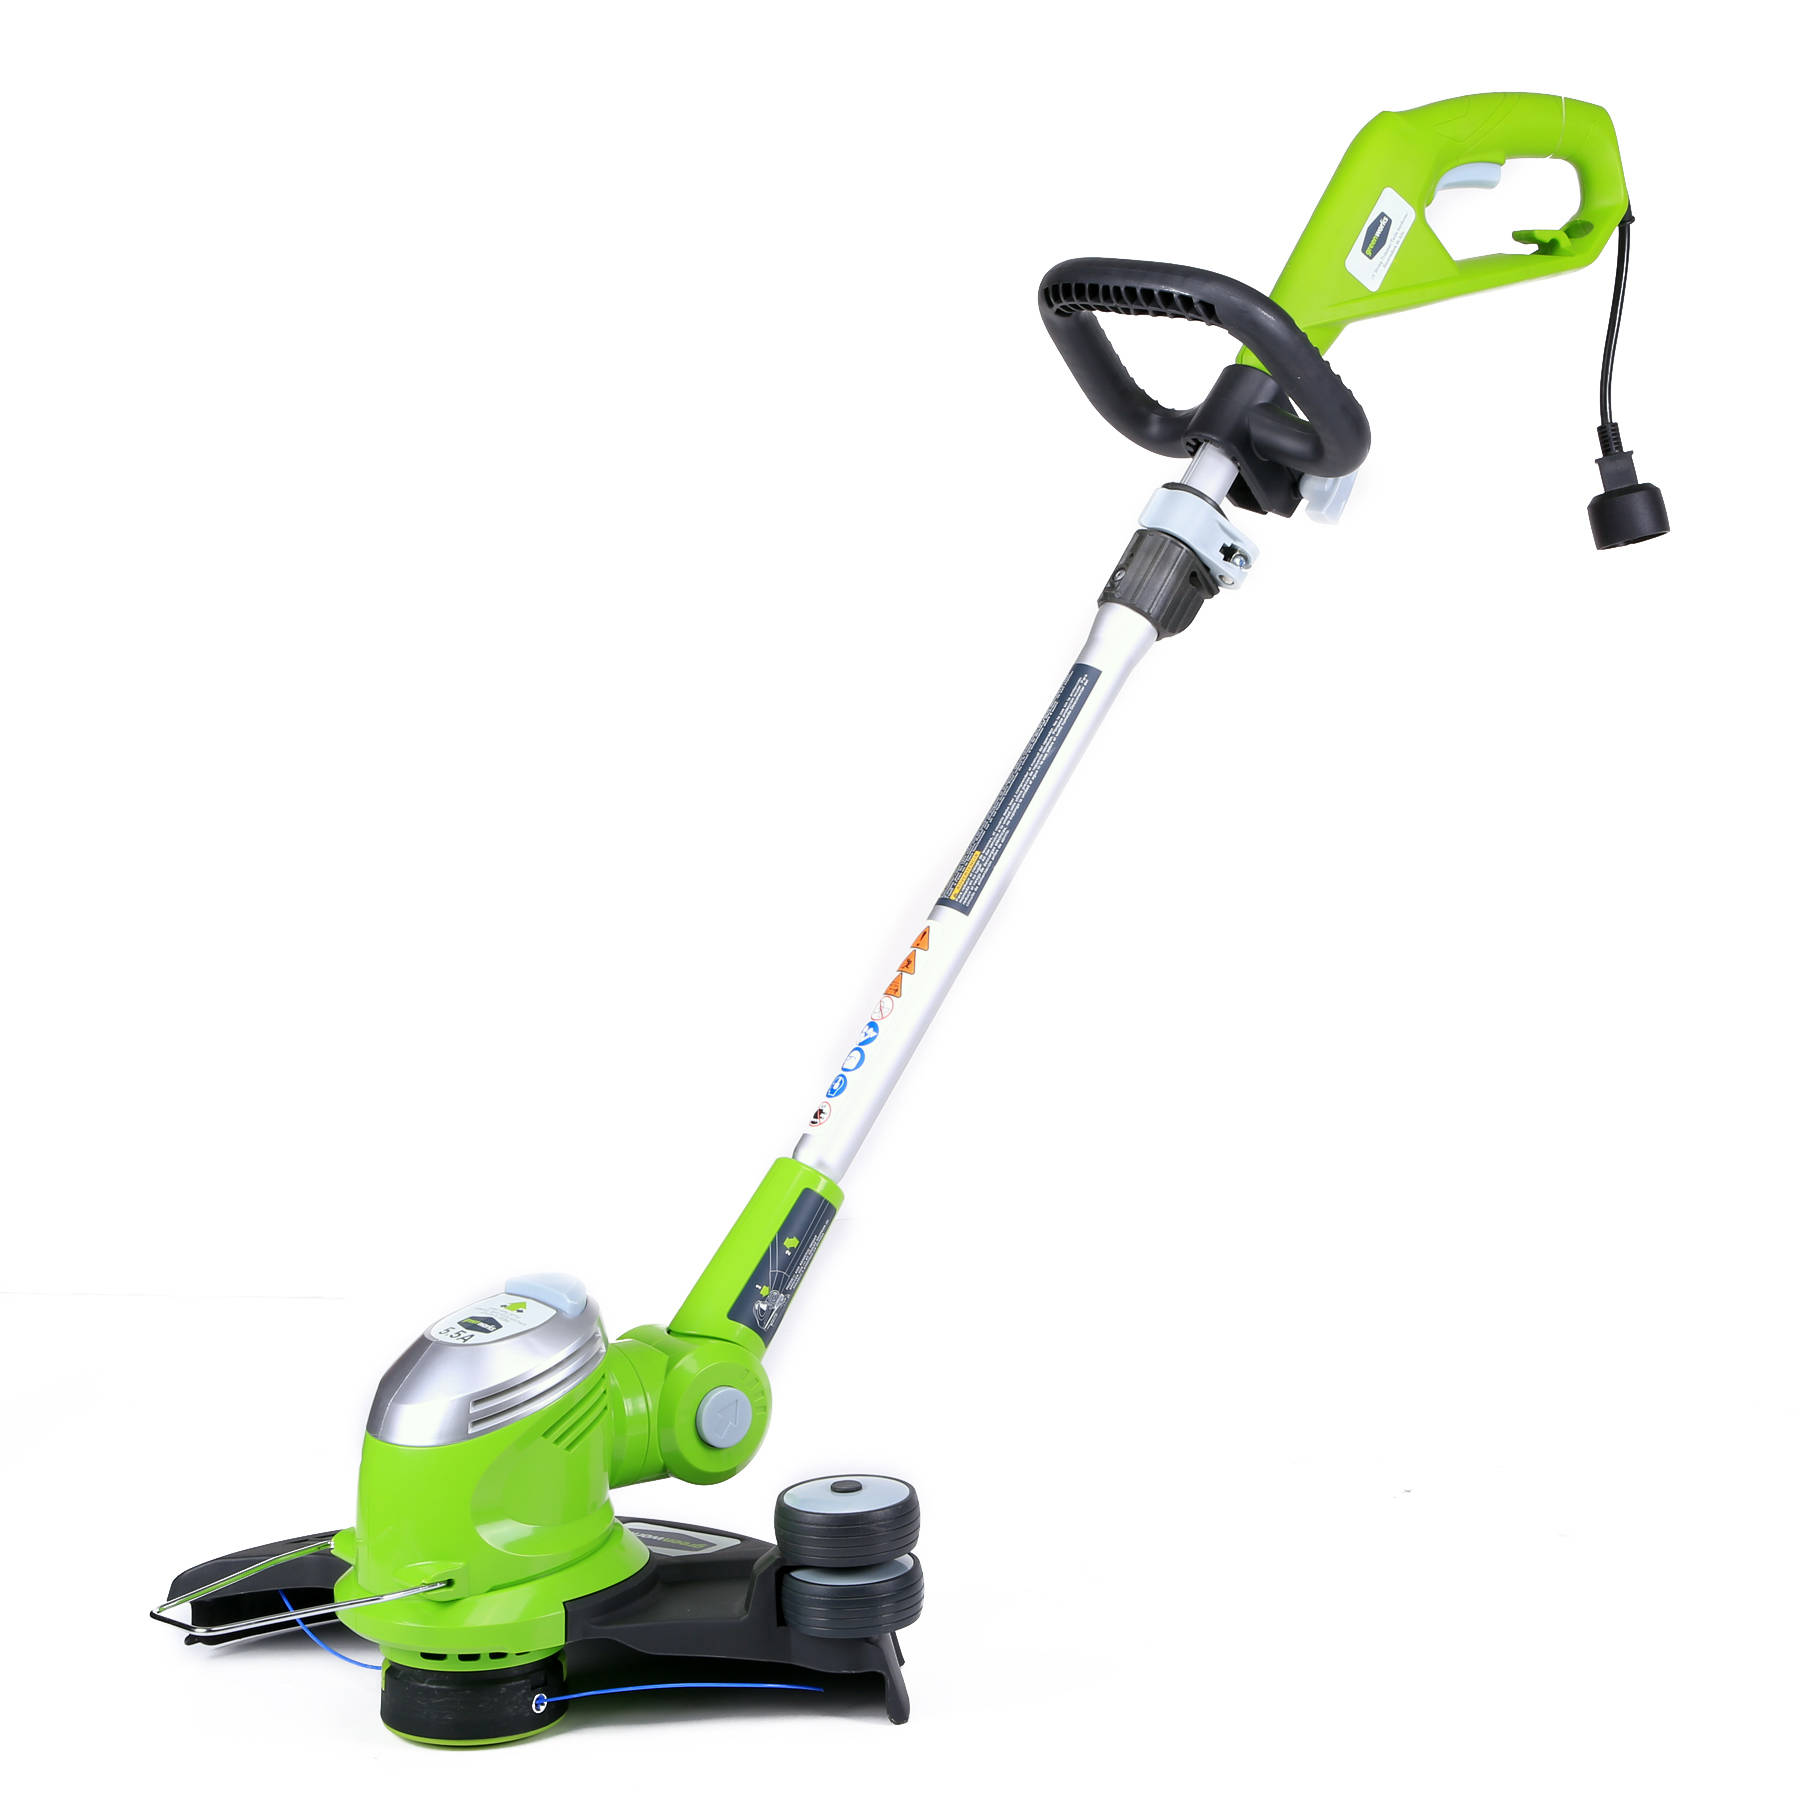 Greenworks 7.0 amp Electric Leaf Blower Green Walmart.com #86B11A